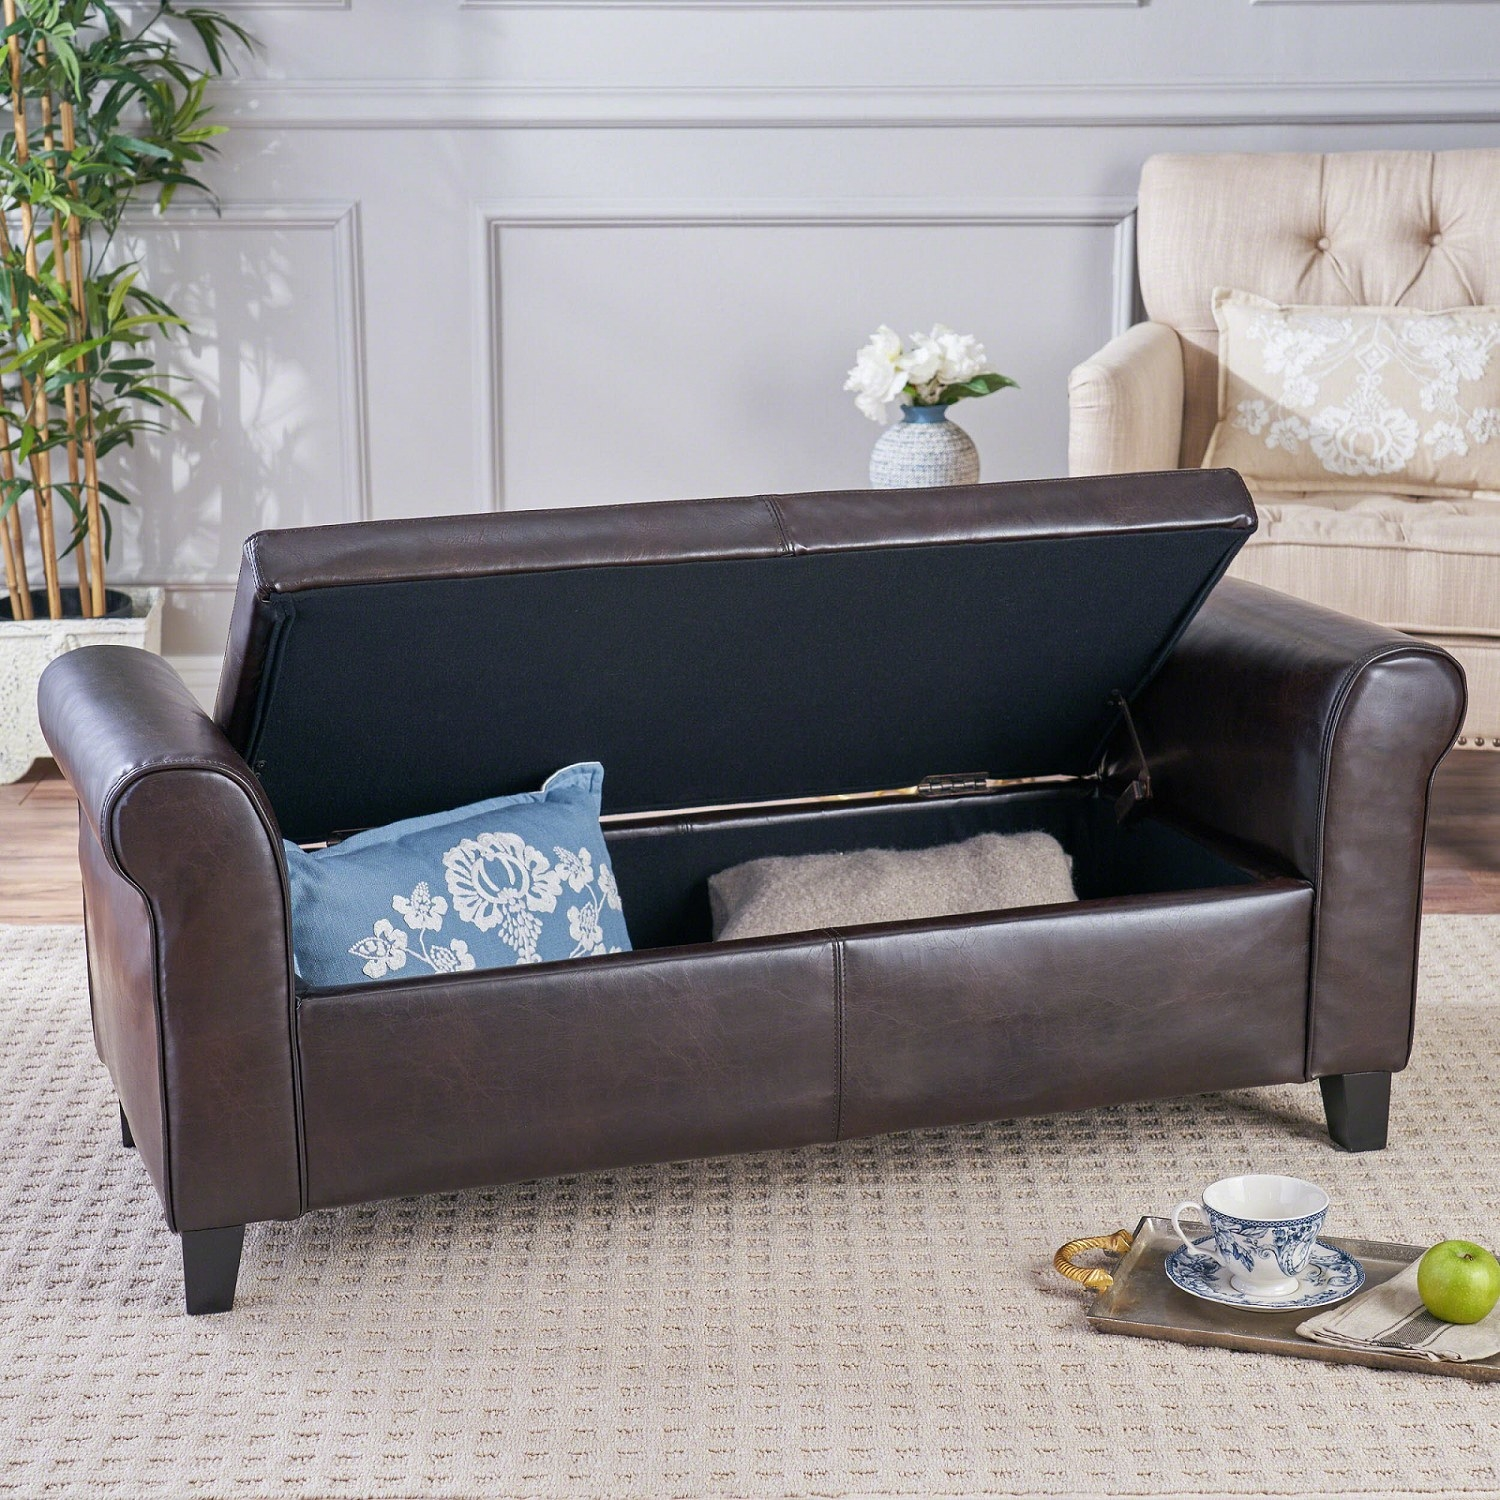 The bench with top up revealing a pillow and blanket inside